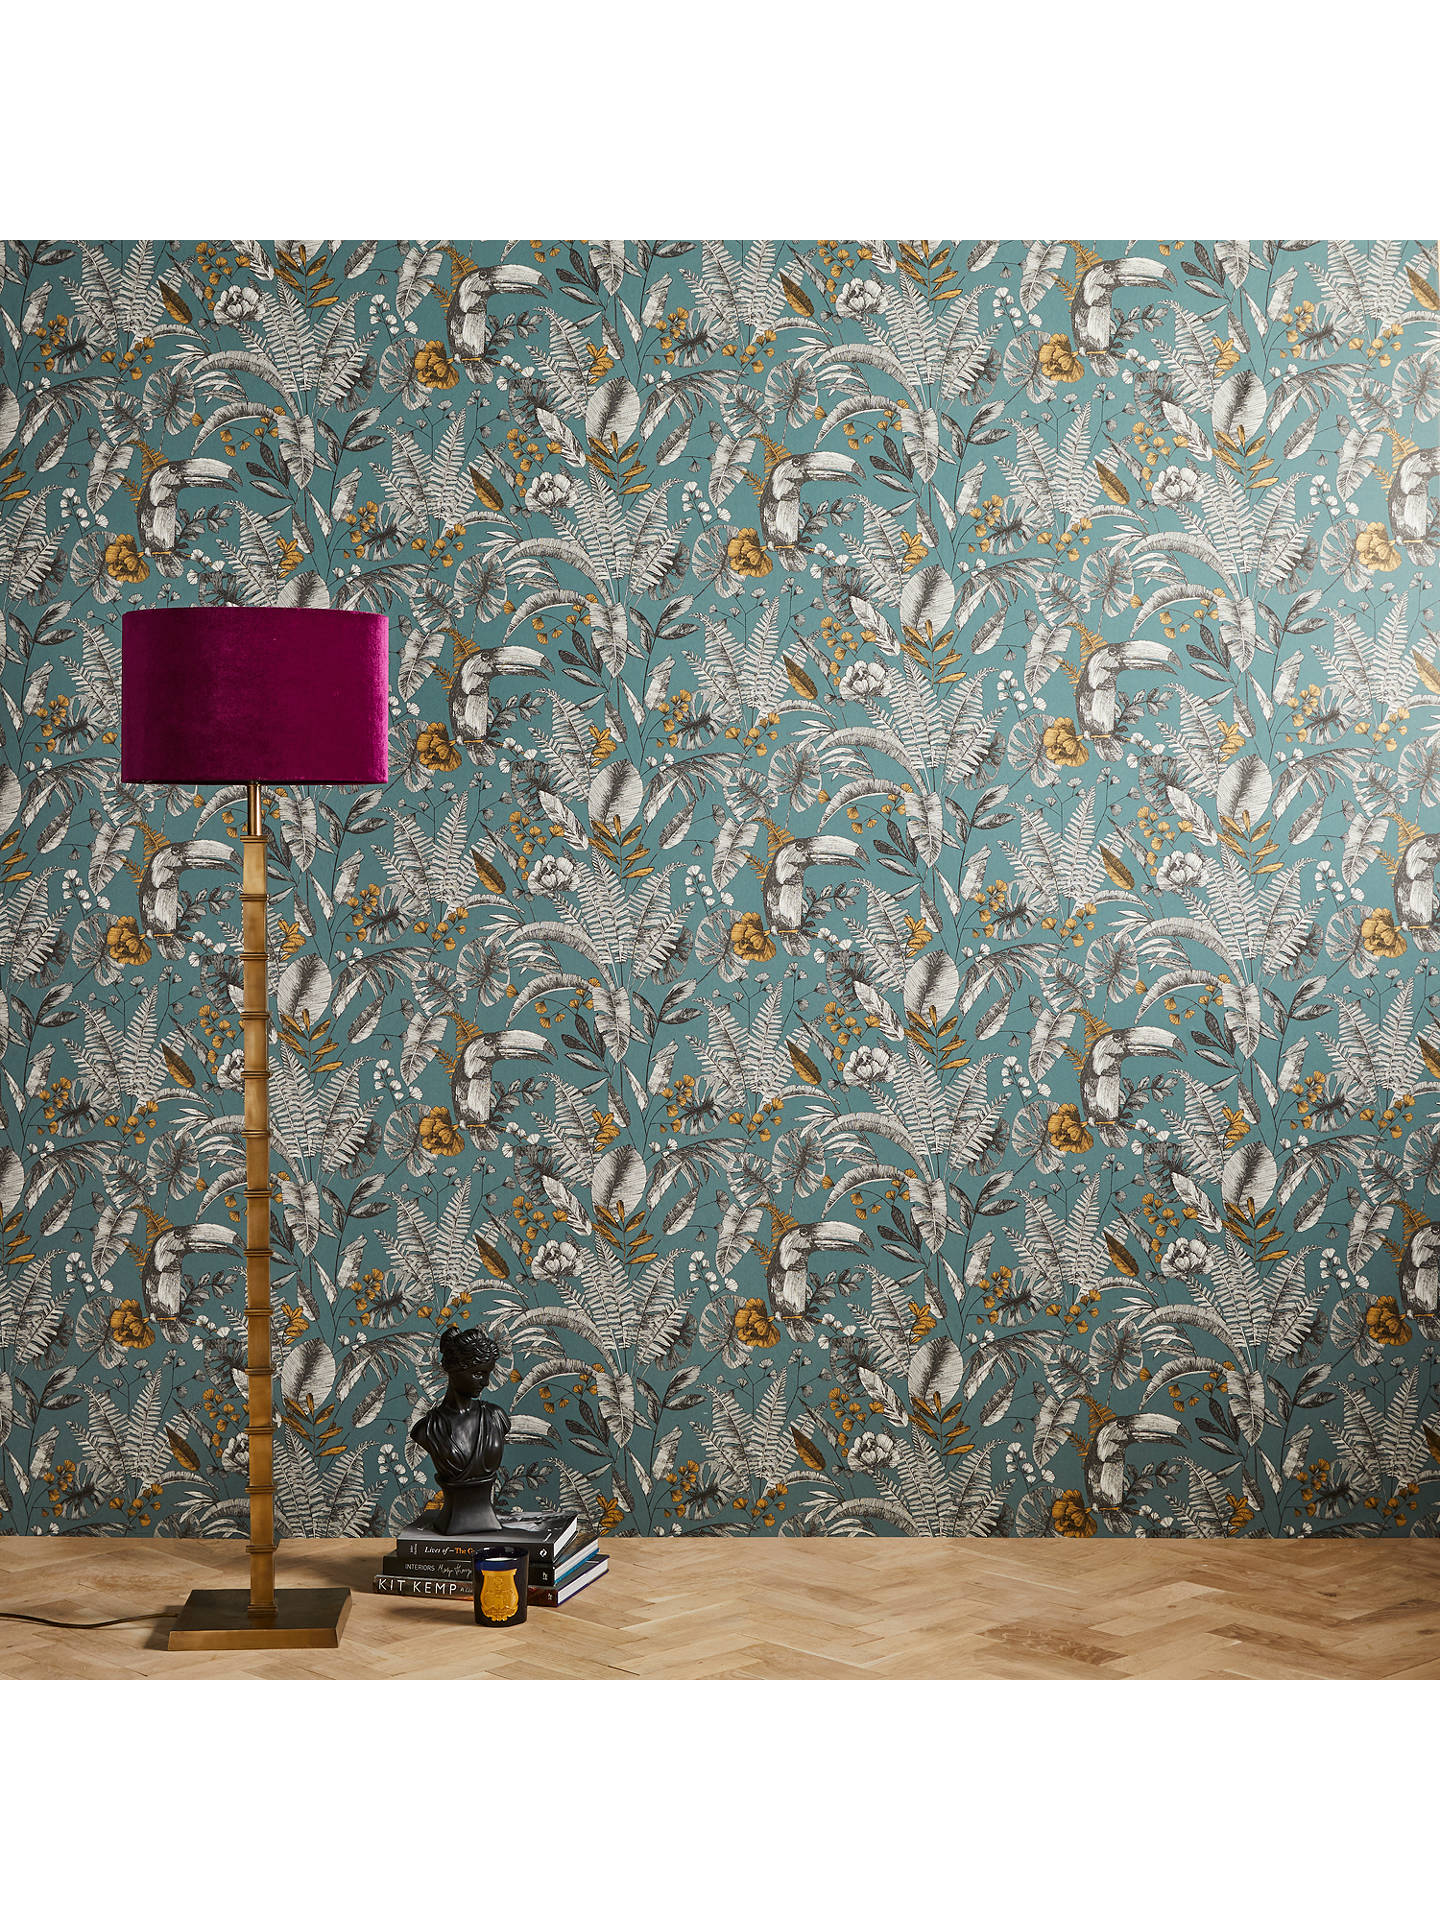 Buy John Lewis & Partners Ipanema Heritage Paste the Wall Wallpaper, Blue Online at johnlewis.com